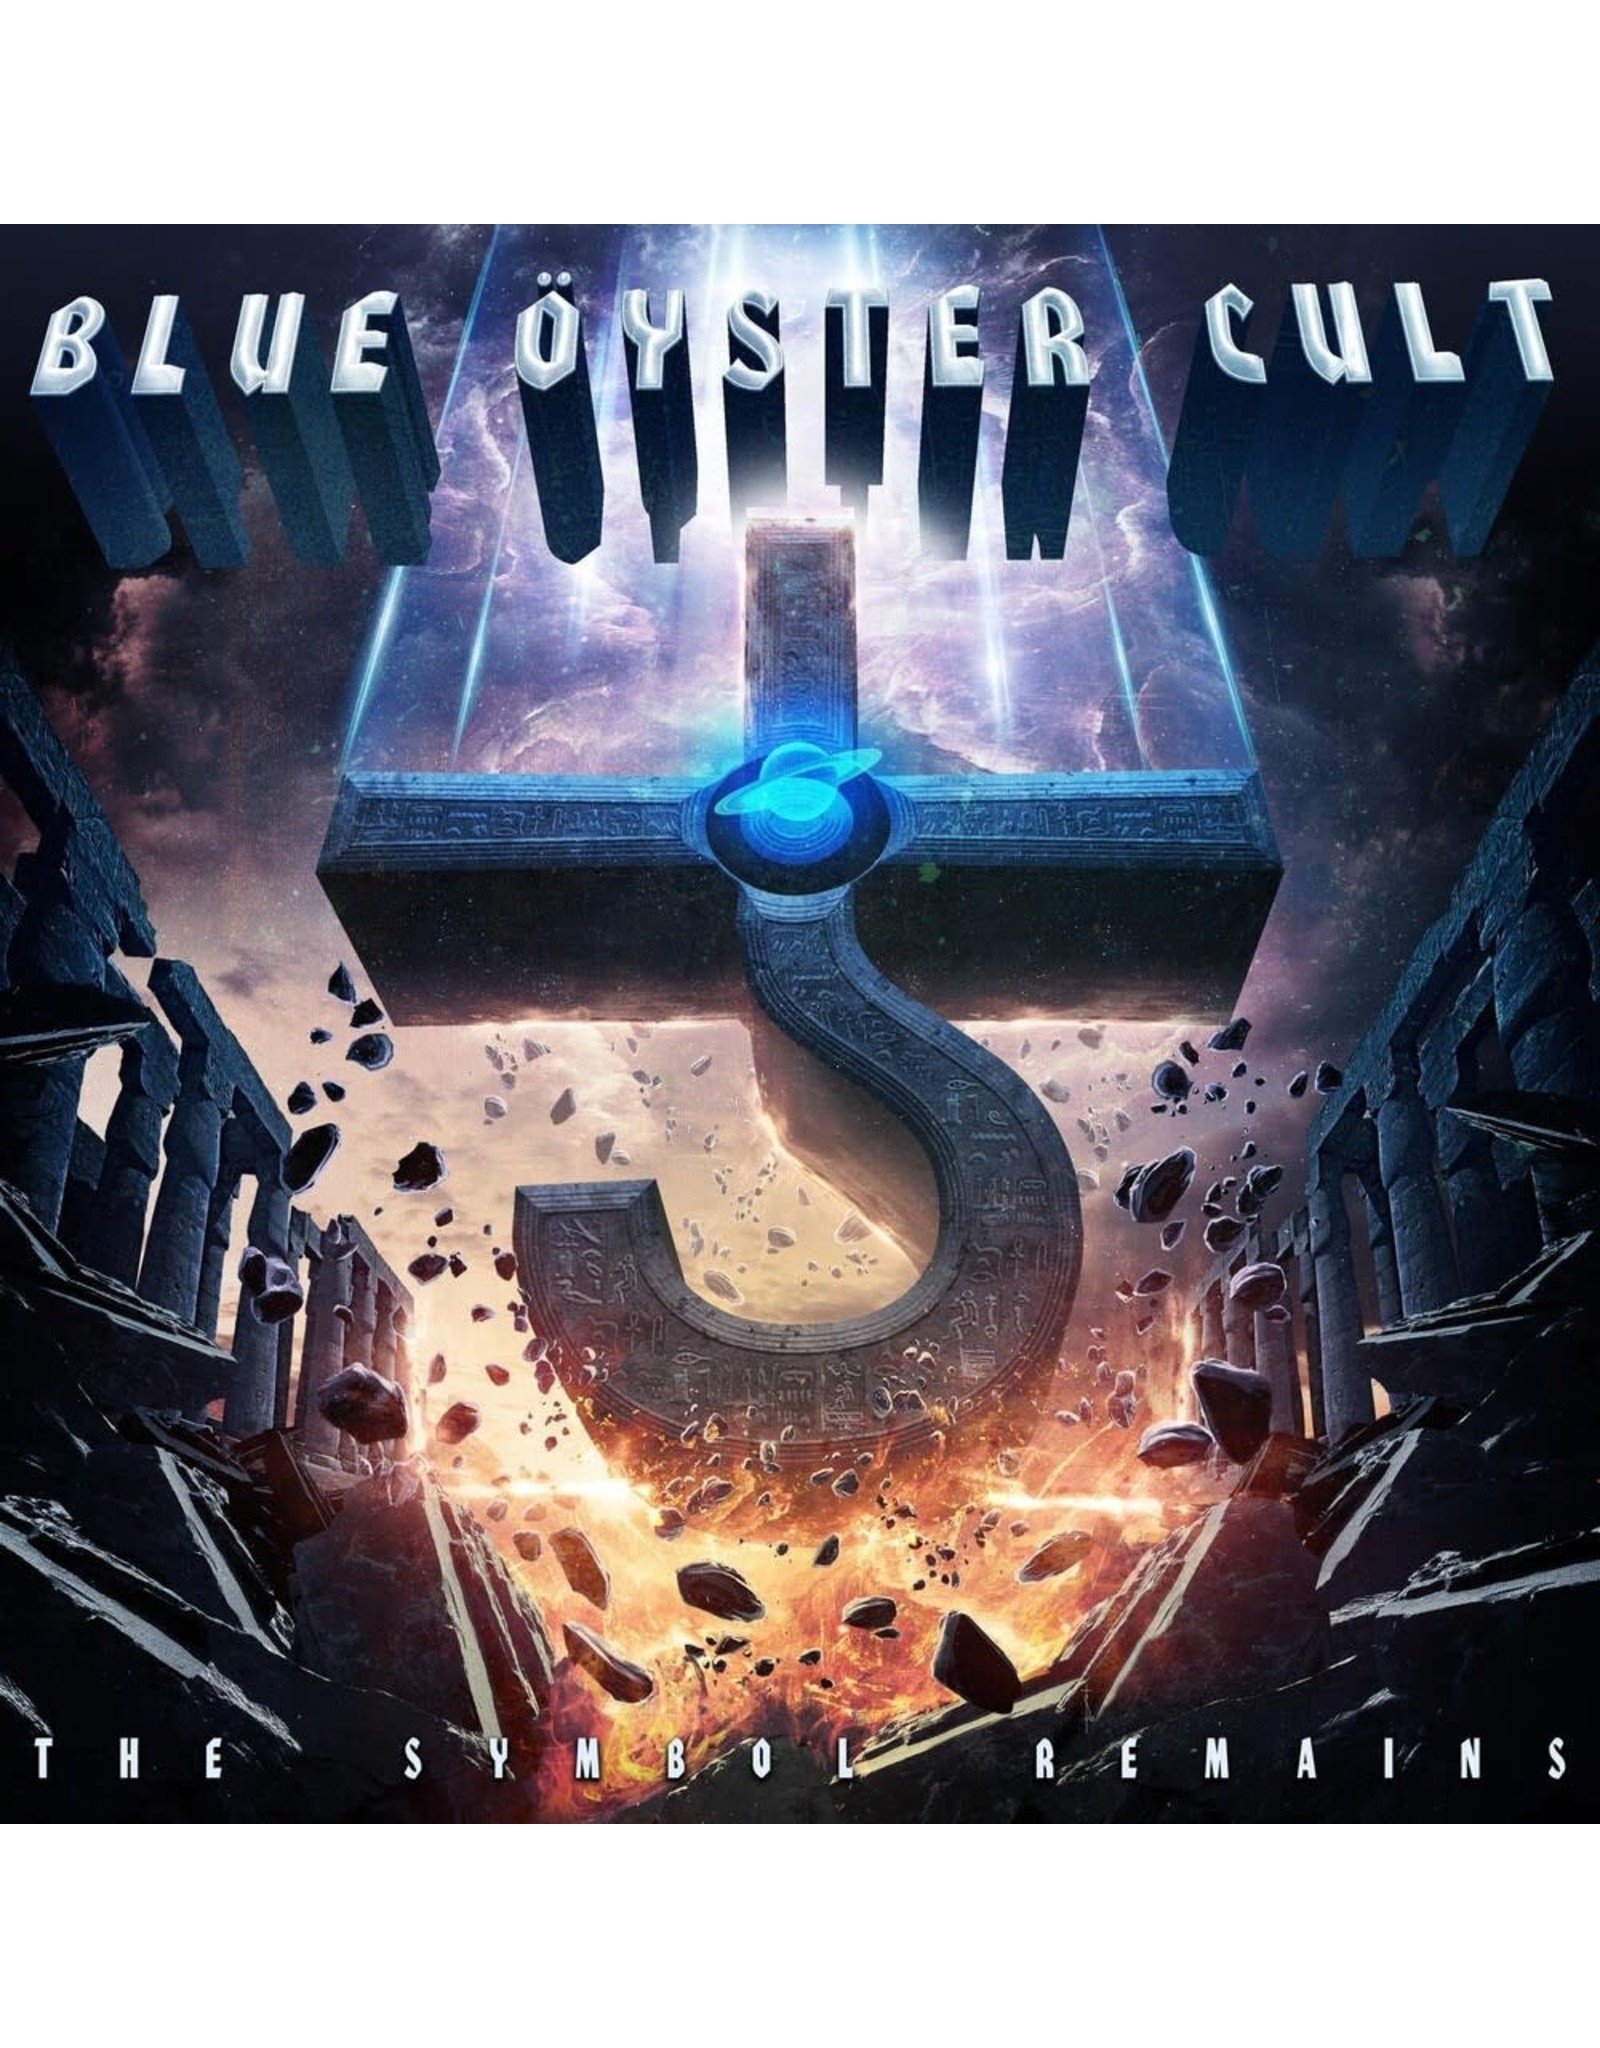 Blue Oyster Cult - The Symbol Remains 2LP